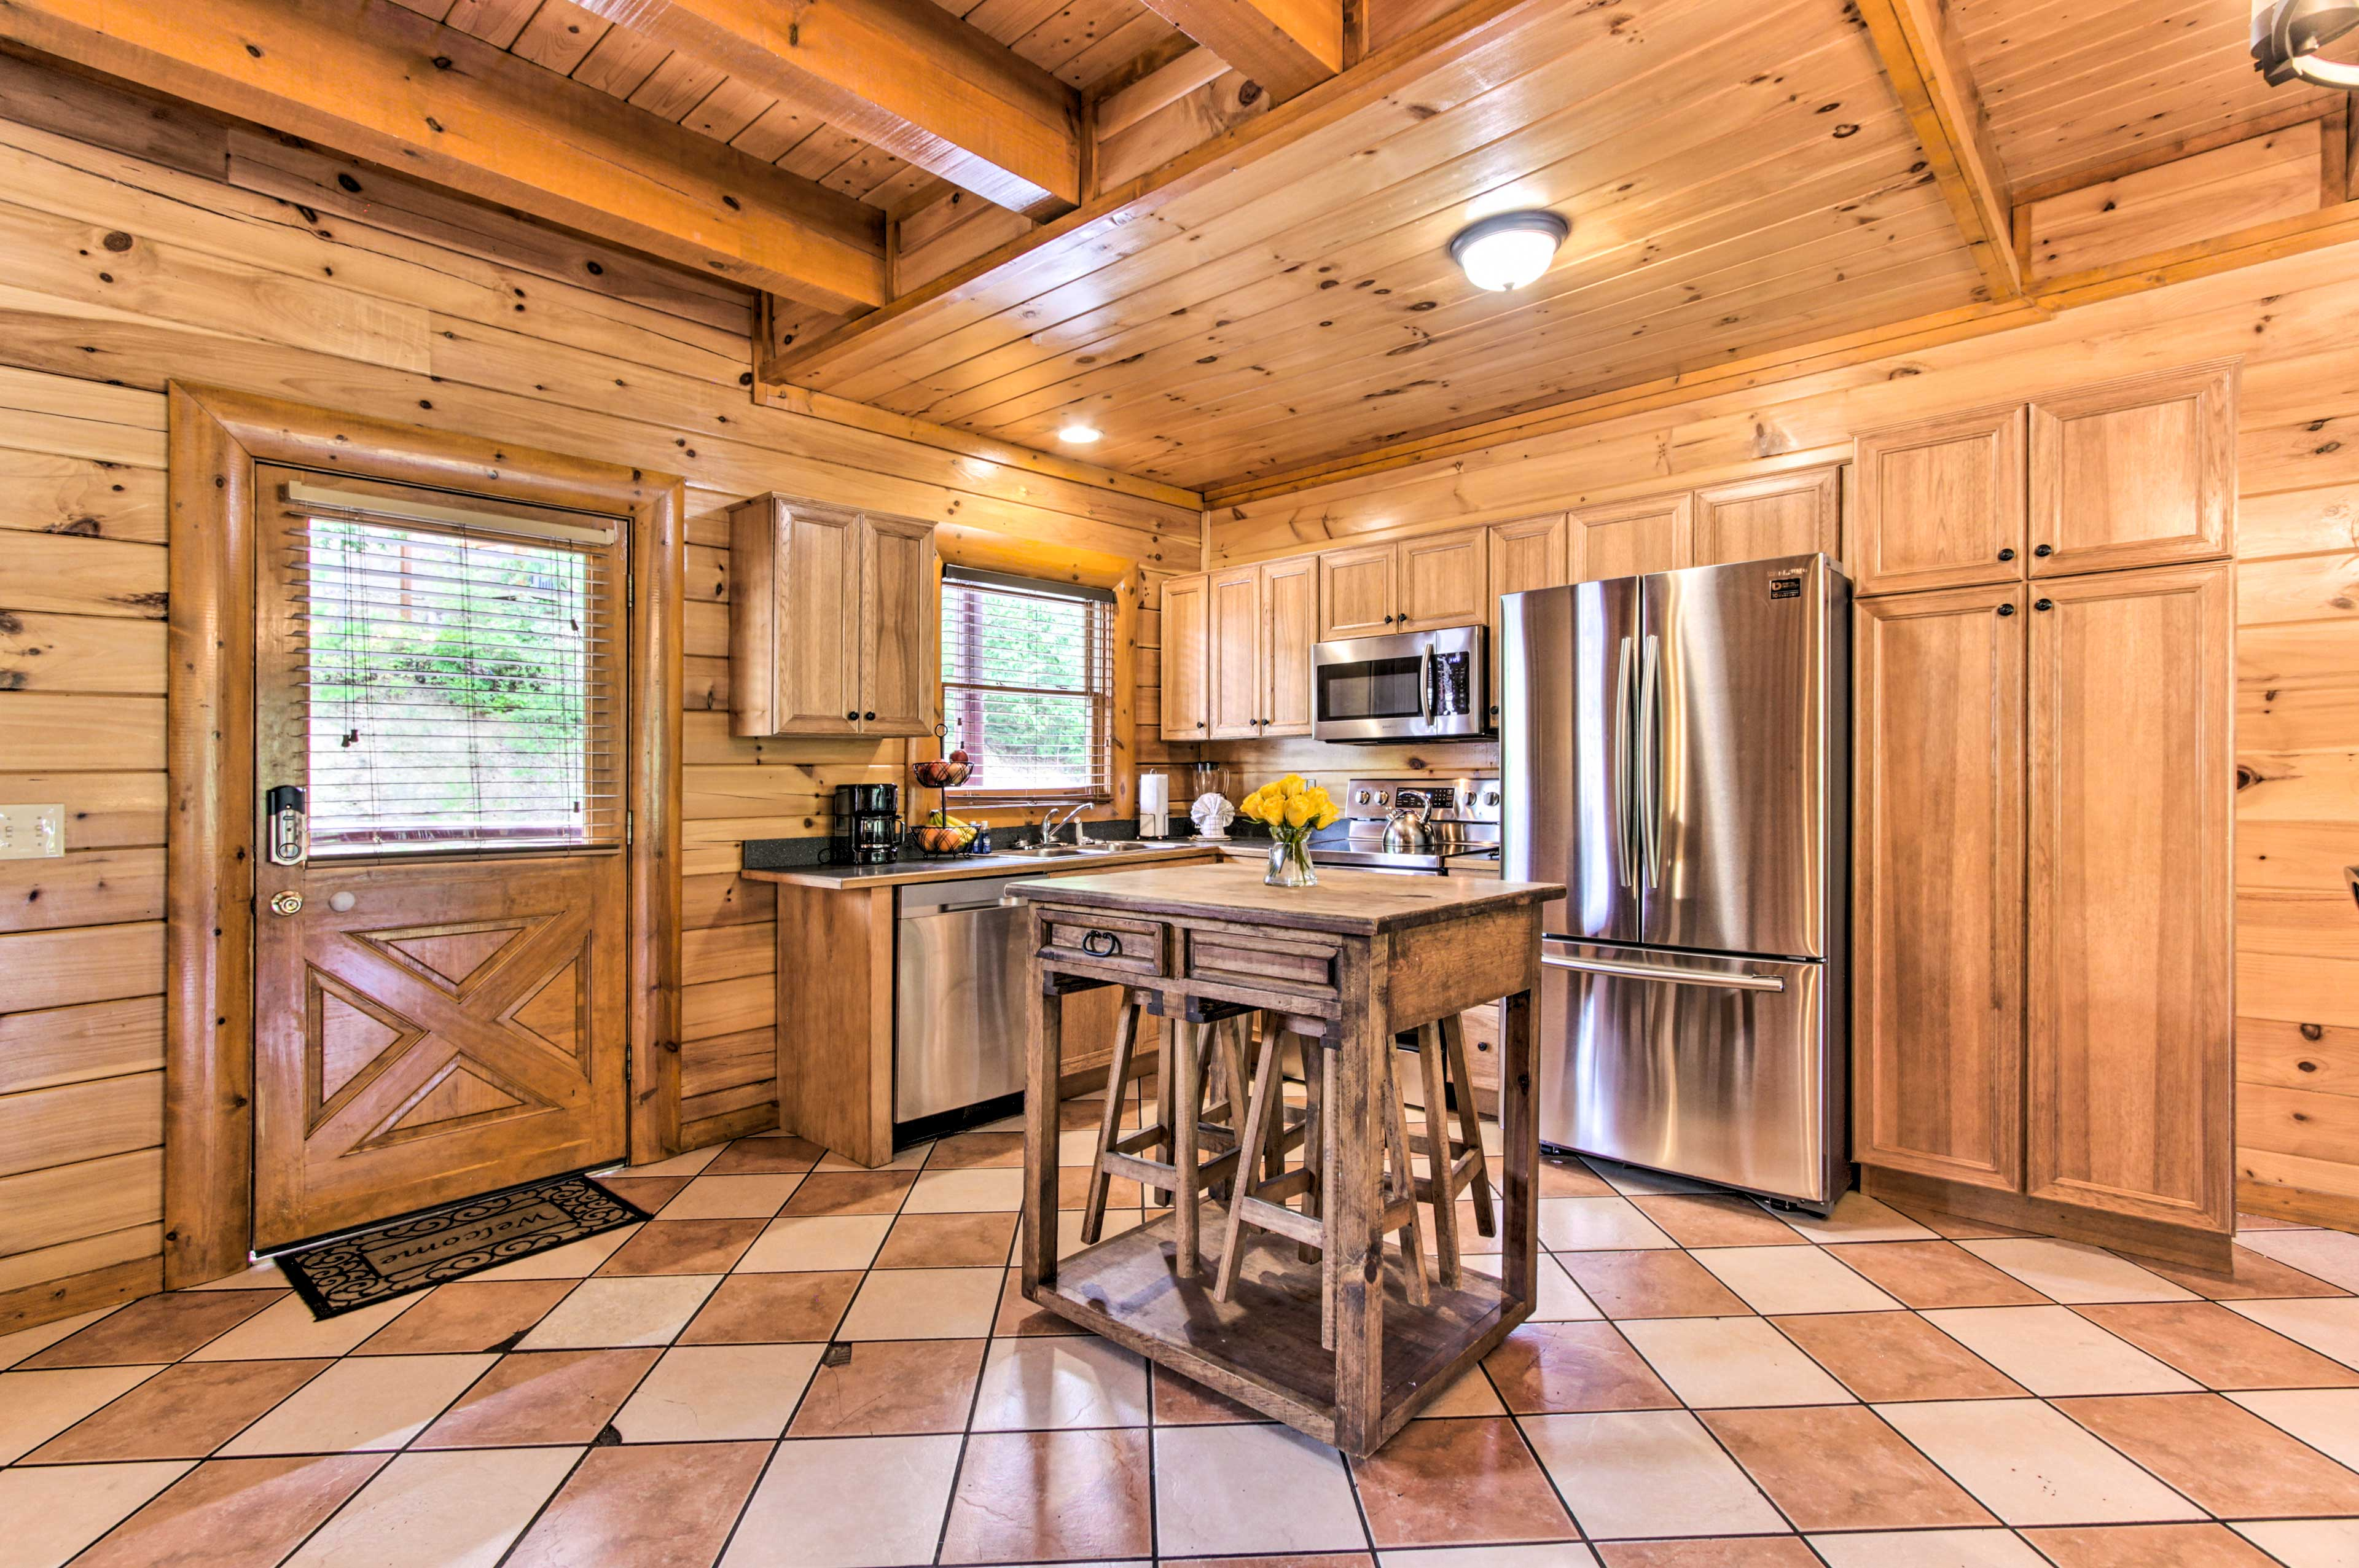 The rustic interior of the cabin makes for a warm and inviting stay.